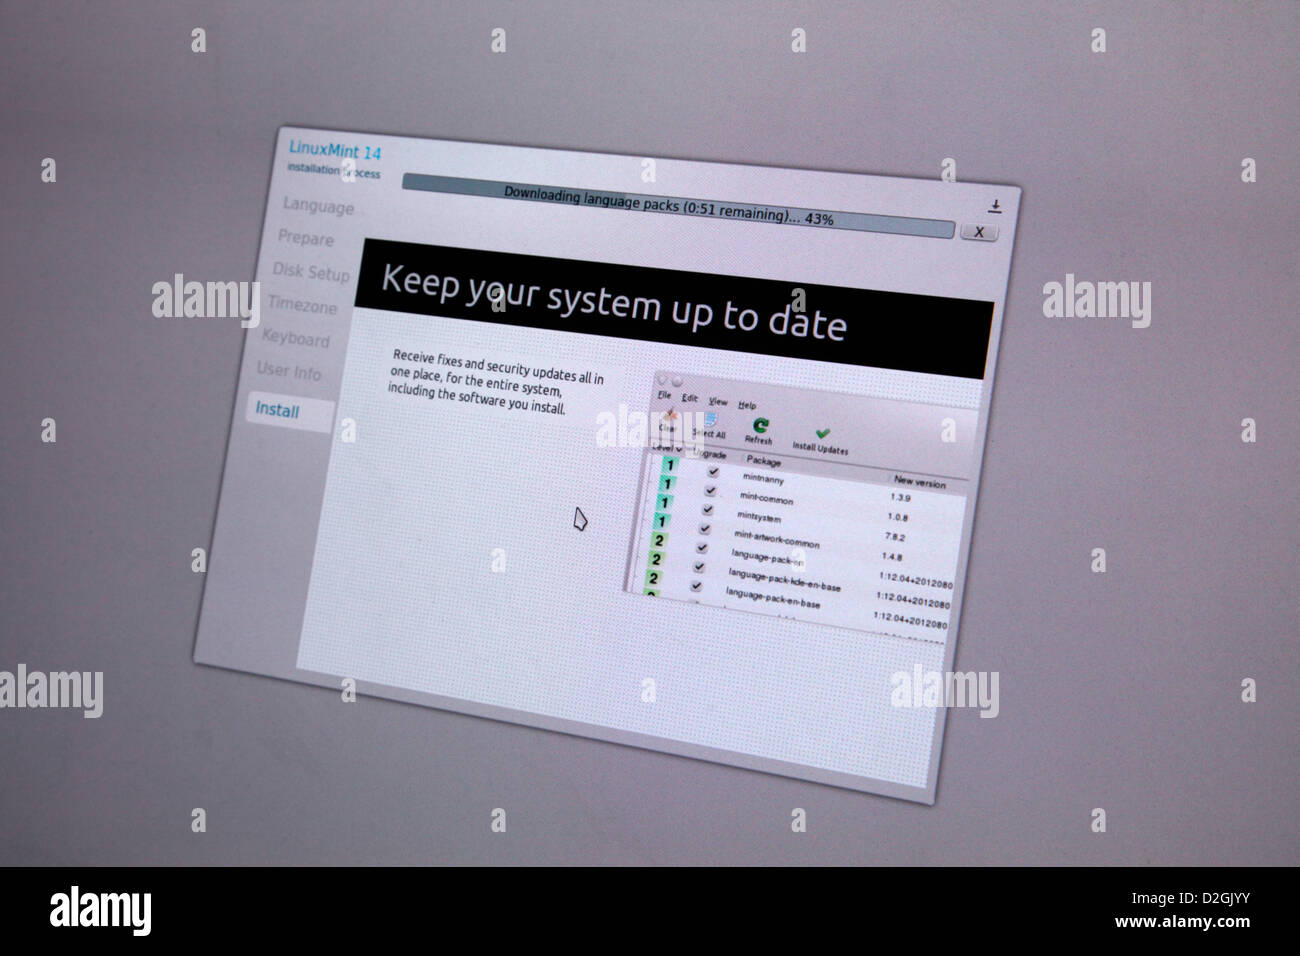 Linux Mint 14 operating system - installation showing screenshot showing open source software available during install - Stock Image